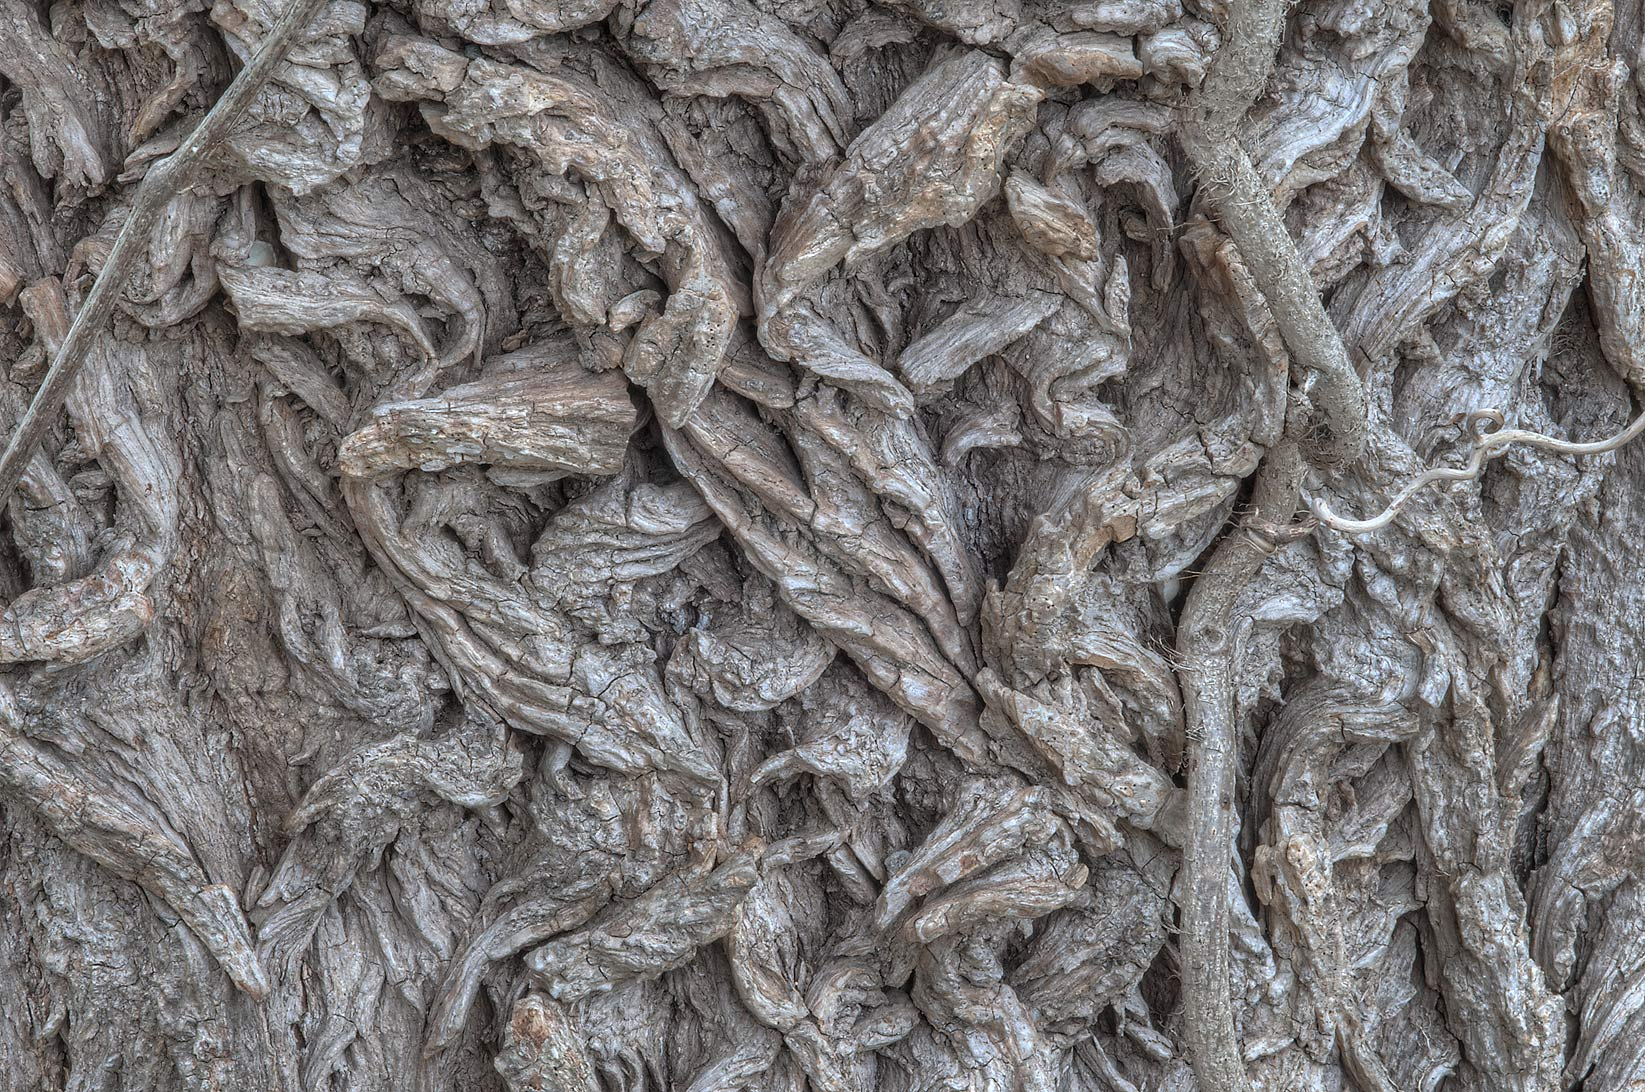 Bark at the base of large black willow tree in...State Historic Site. Washington, Texas